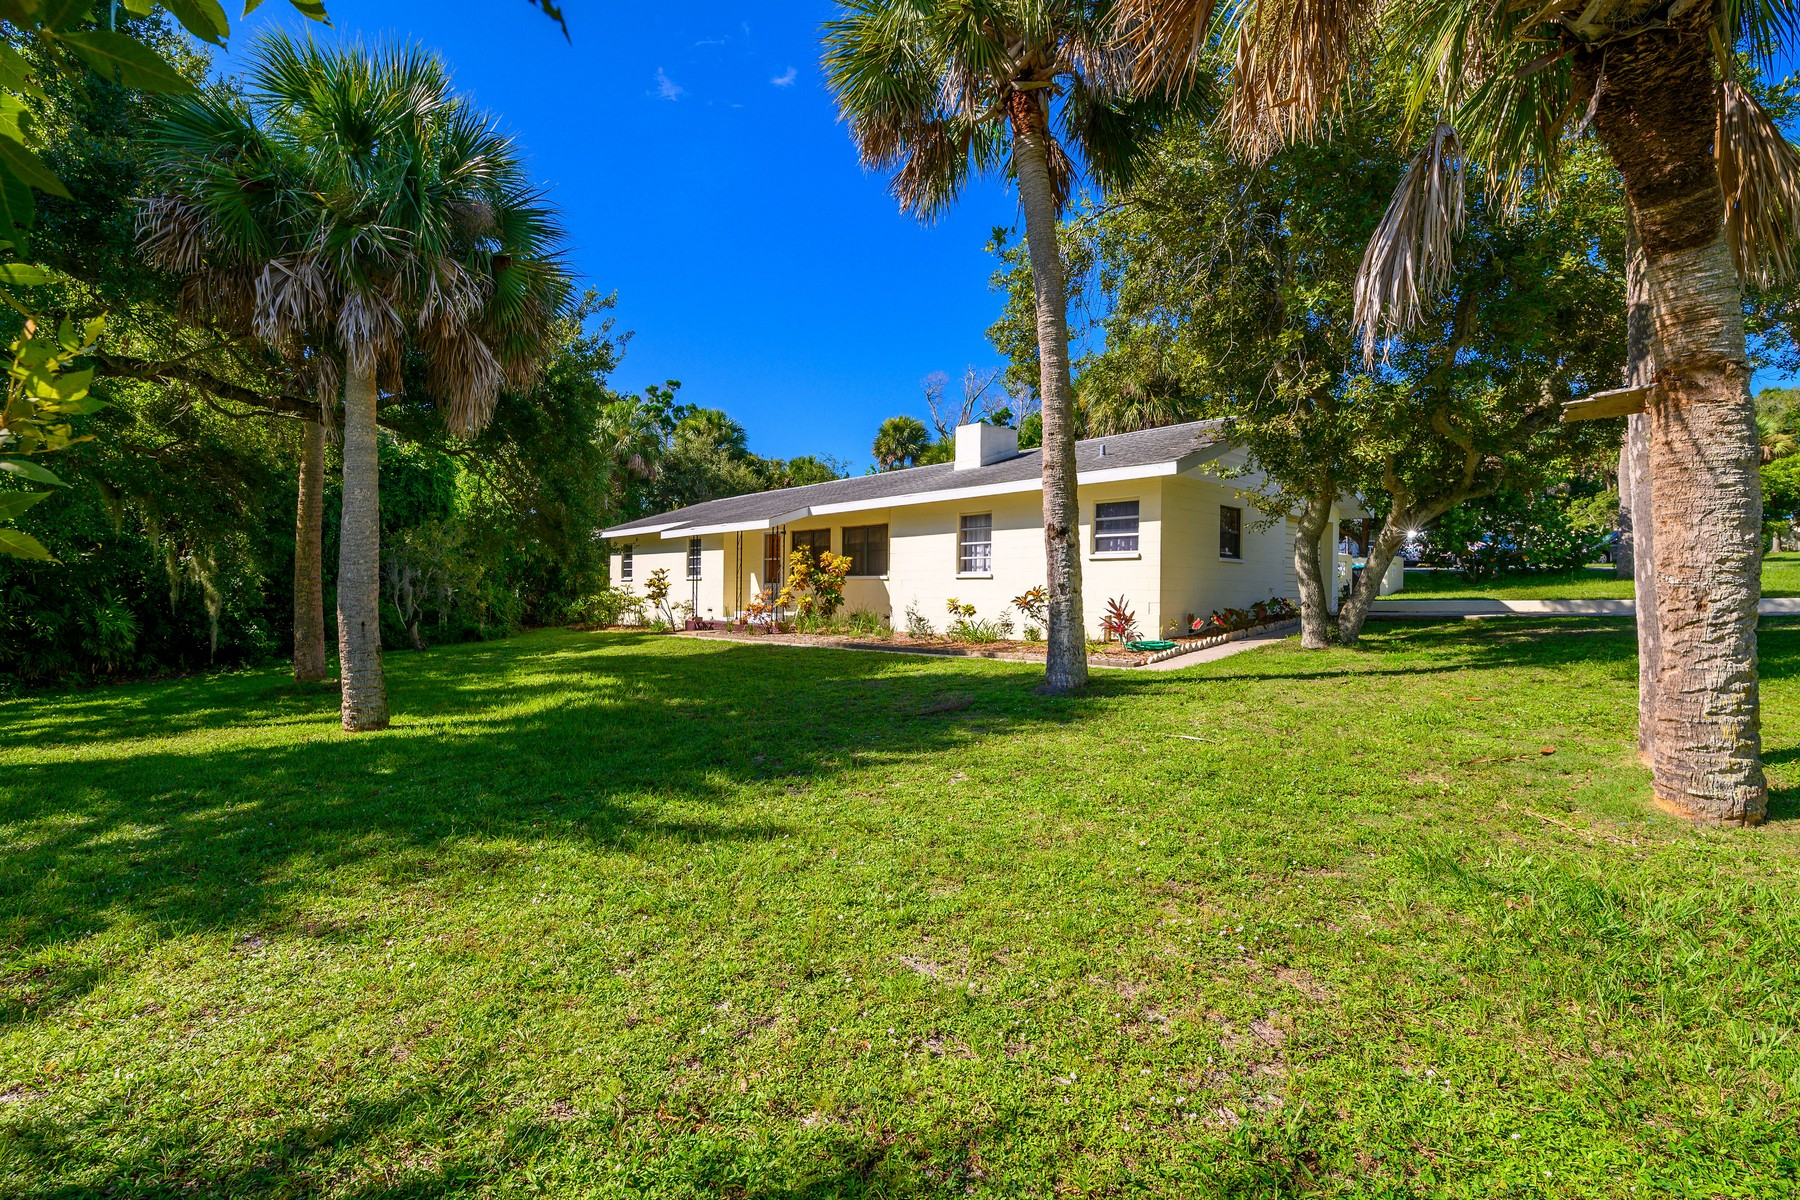 Property 为 销售 在 Charming Home Nestled in Unique Riverfront Community 1419 Anglers Drive NE Palm Bay, 佛罗里达州 32905 美国